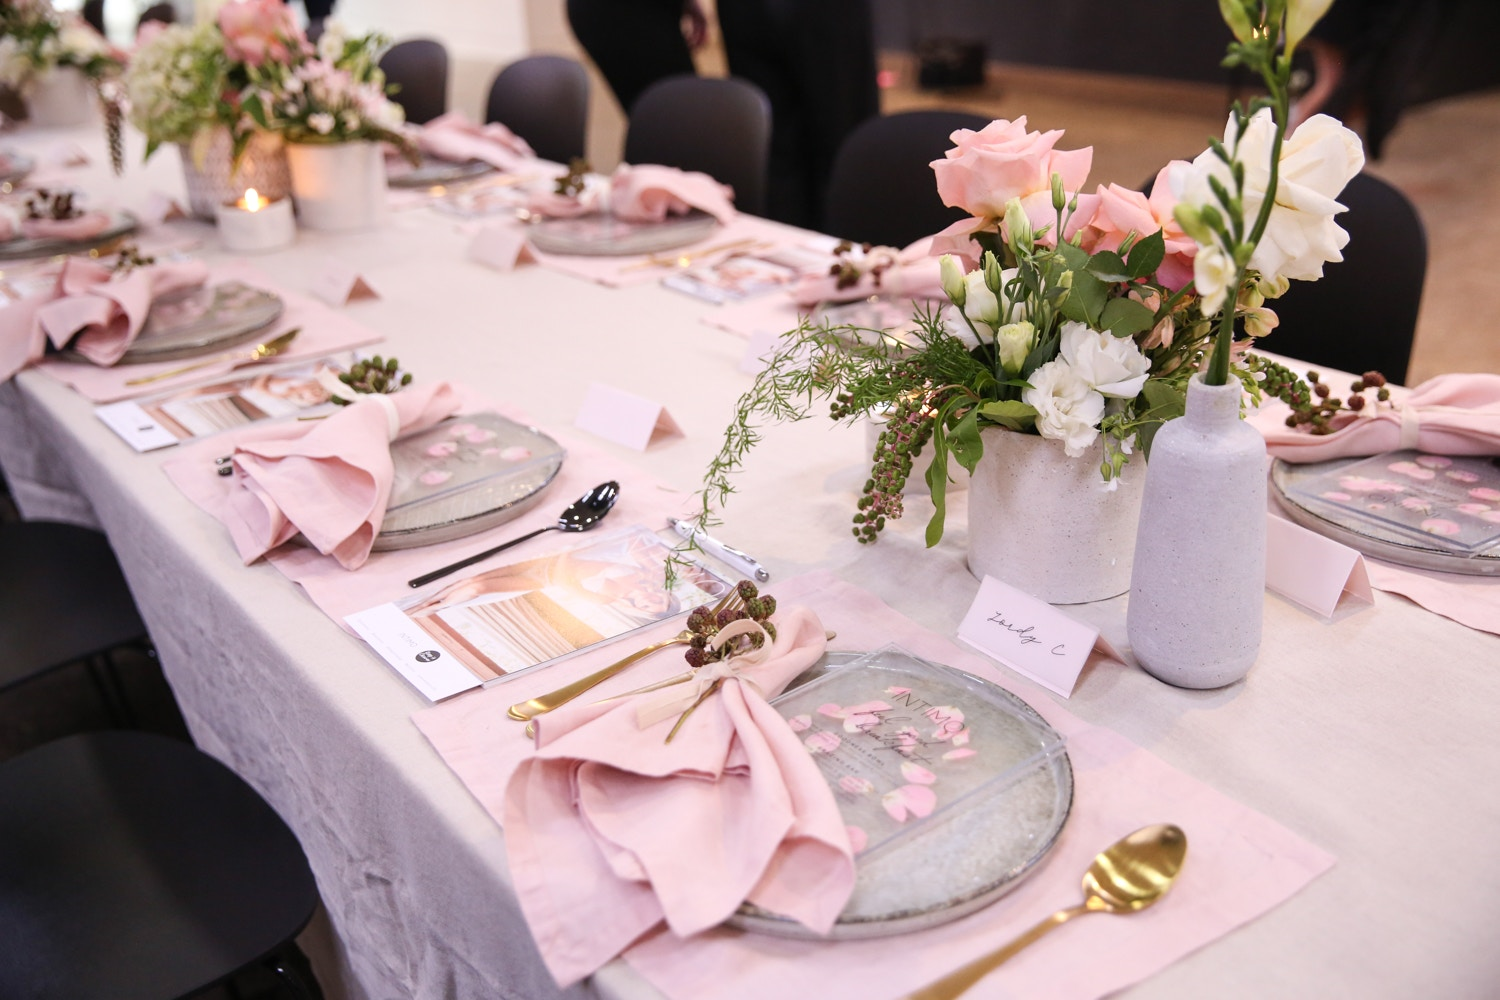 INTIMO x KEEP IT CLEANER BLOGGER BRUNCH